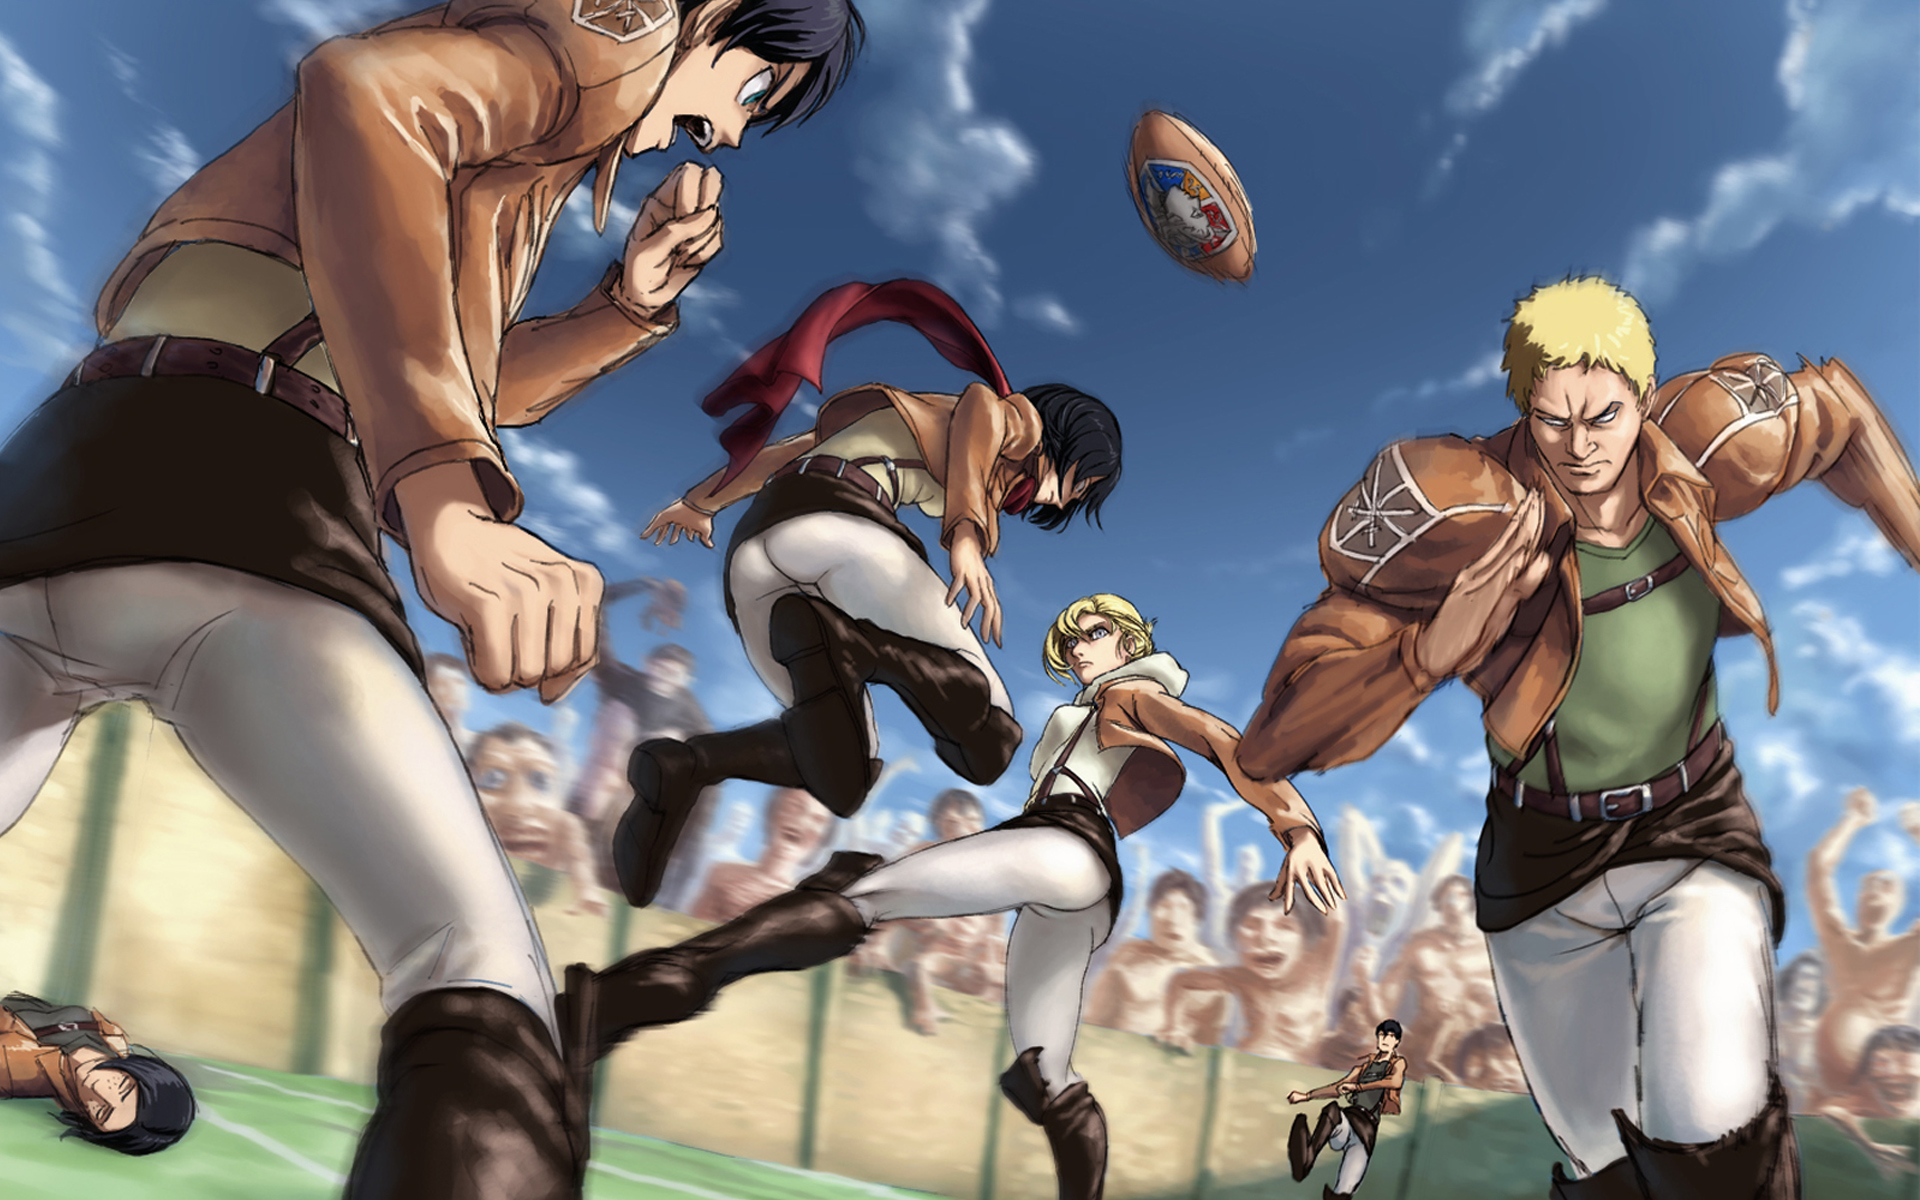 attack on titan shingeki no kyojin anime hd wallpaper image 1920x1200